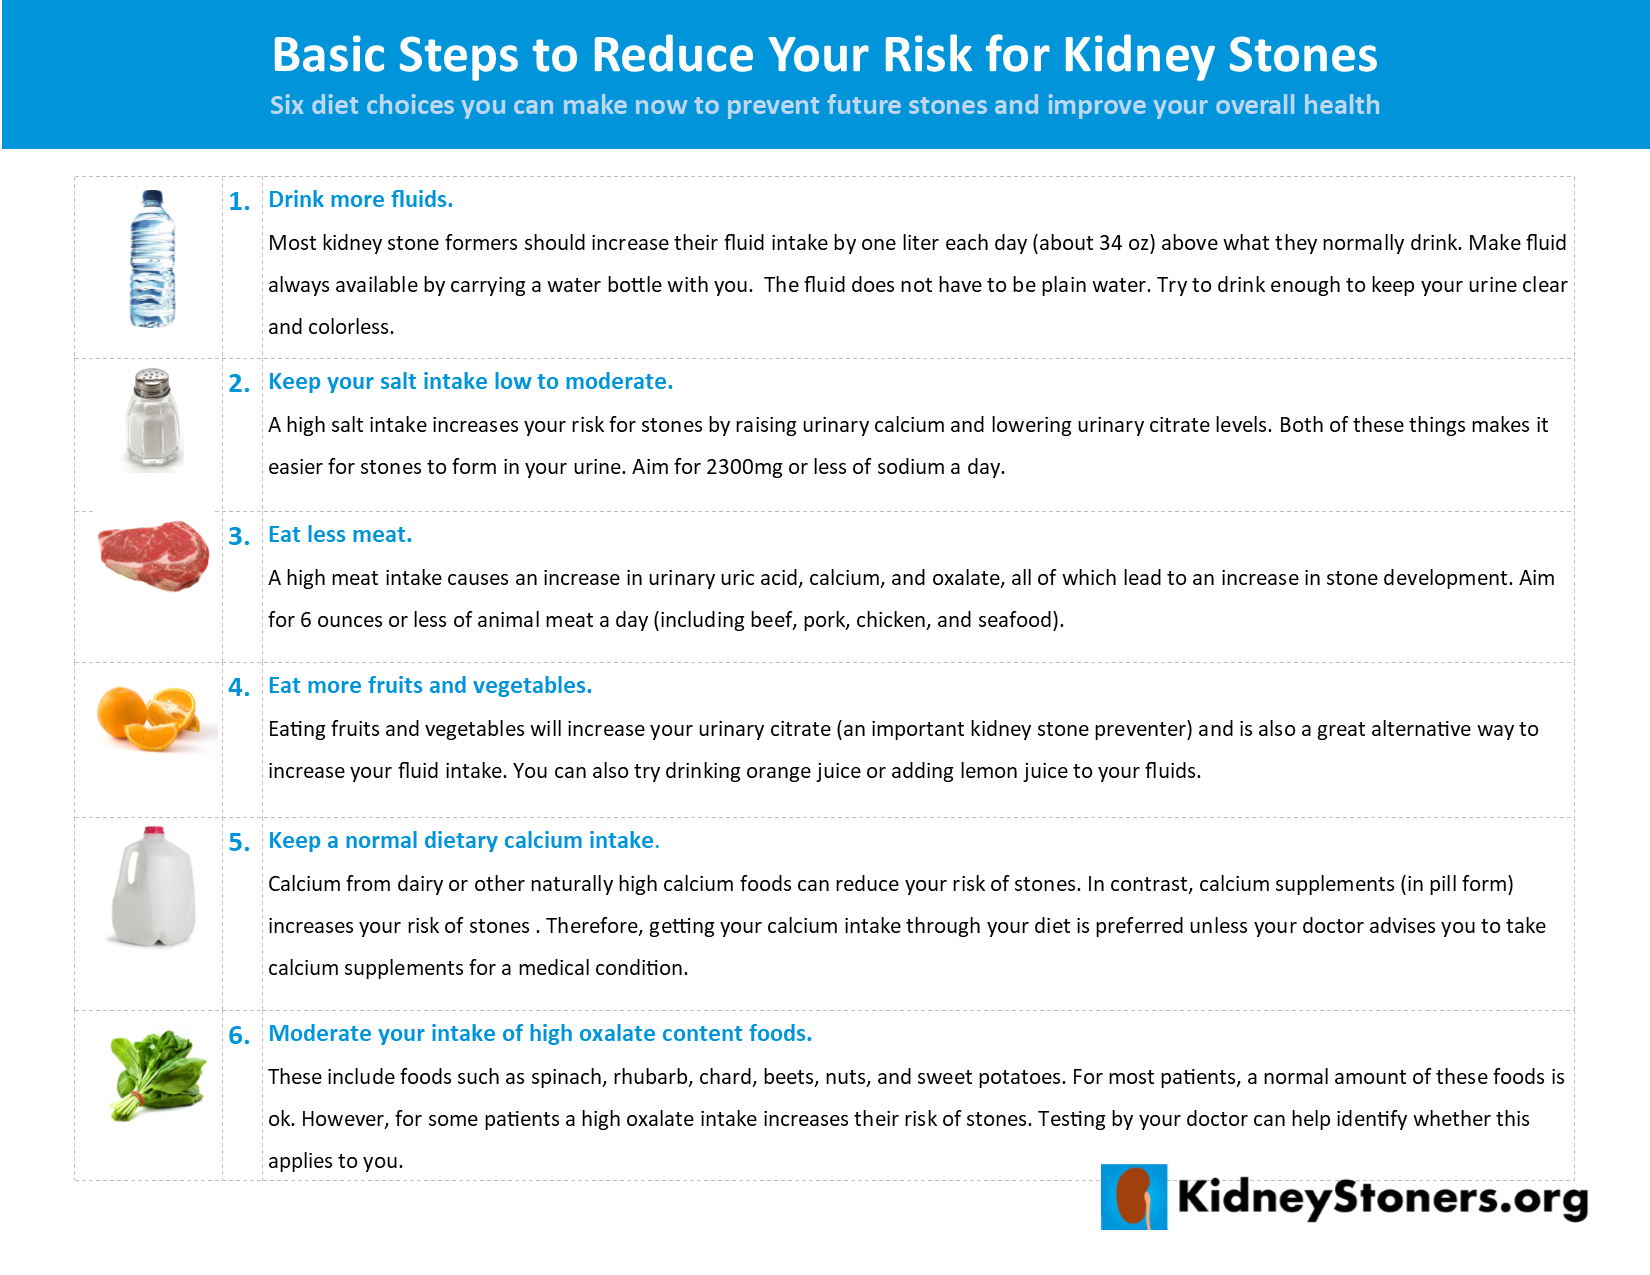 Our Basic Steps To Reduce Your Risk For Kidneys Stones Handout In English And Spanish